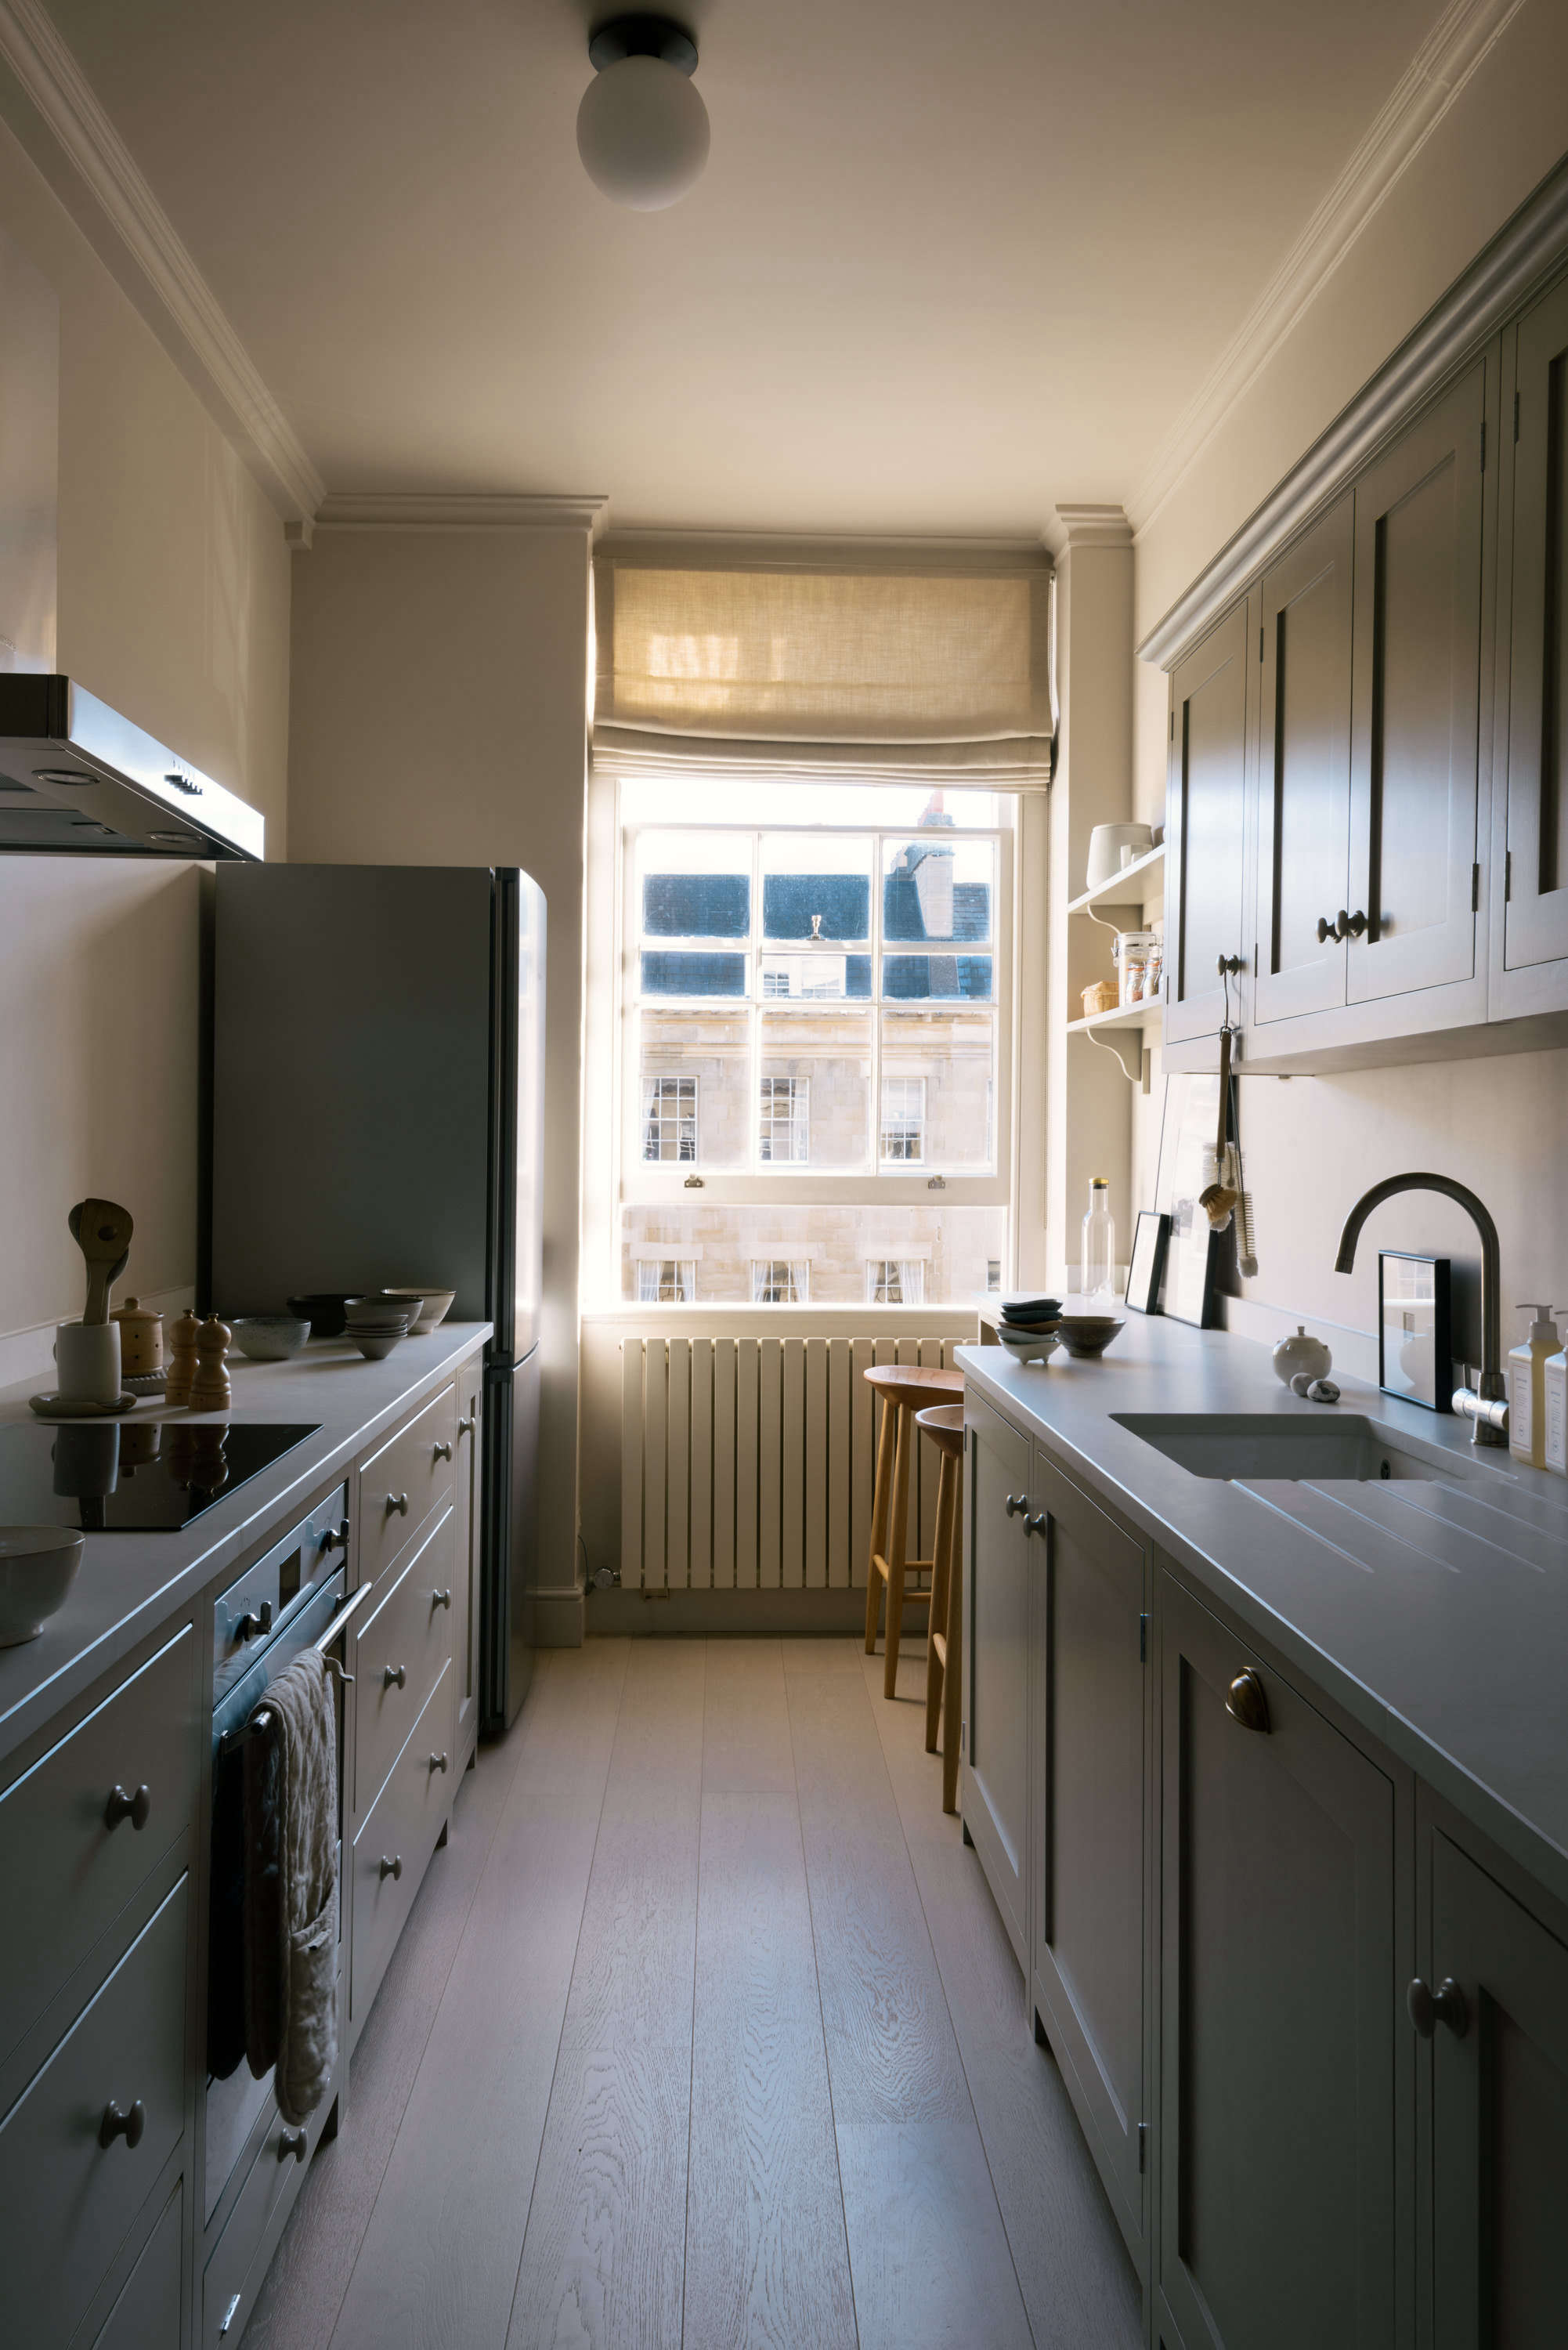 Shaker Galley Kitchen: a Stylish Small Design by deVol for ... on Modern:gijub4Bif1S= Kitchen Remodel  id=51389